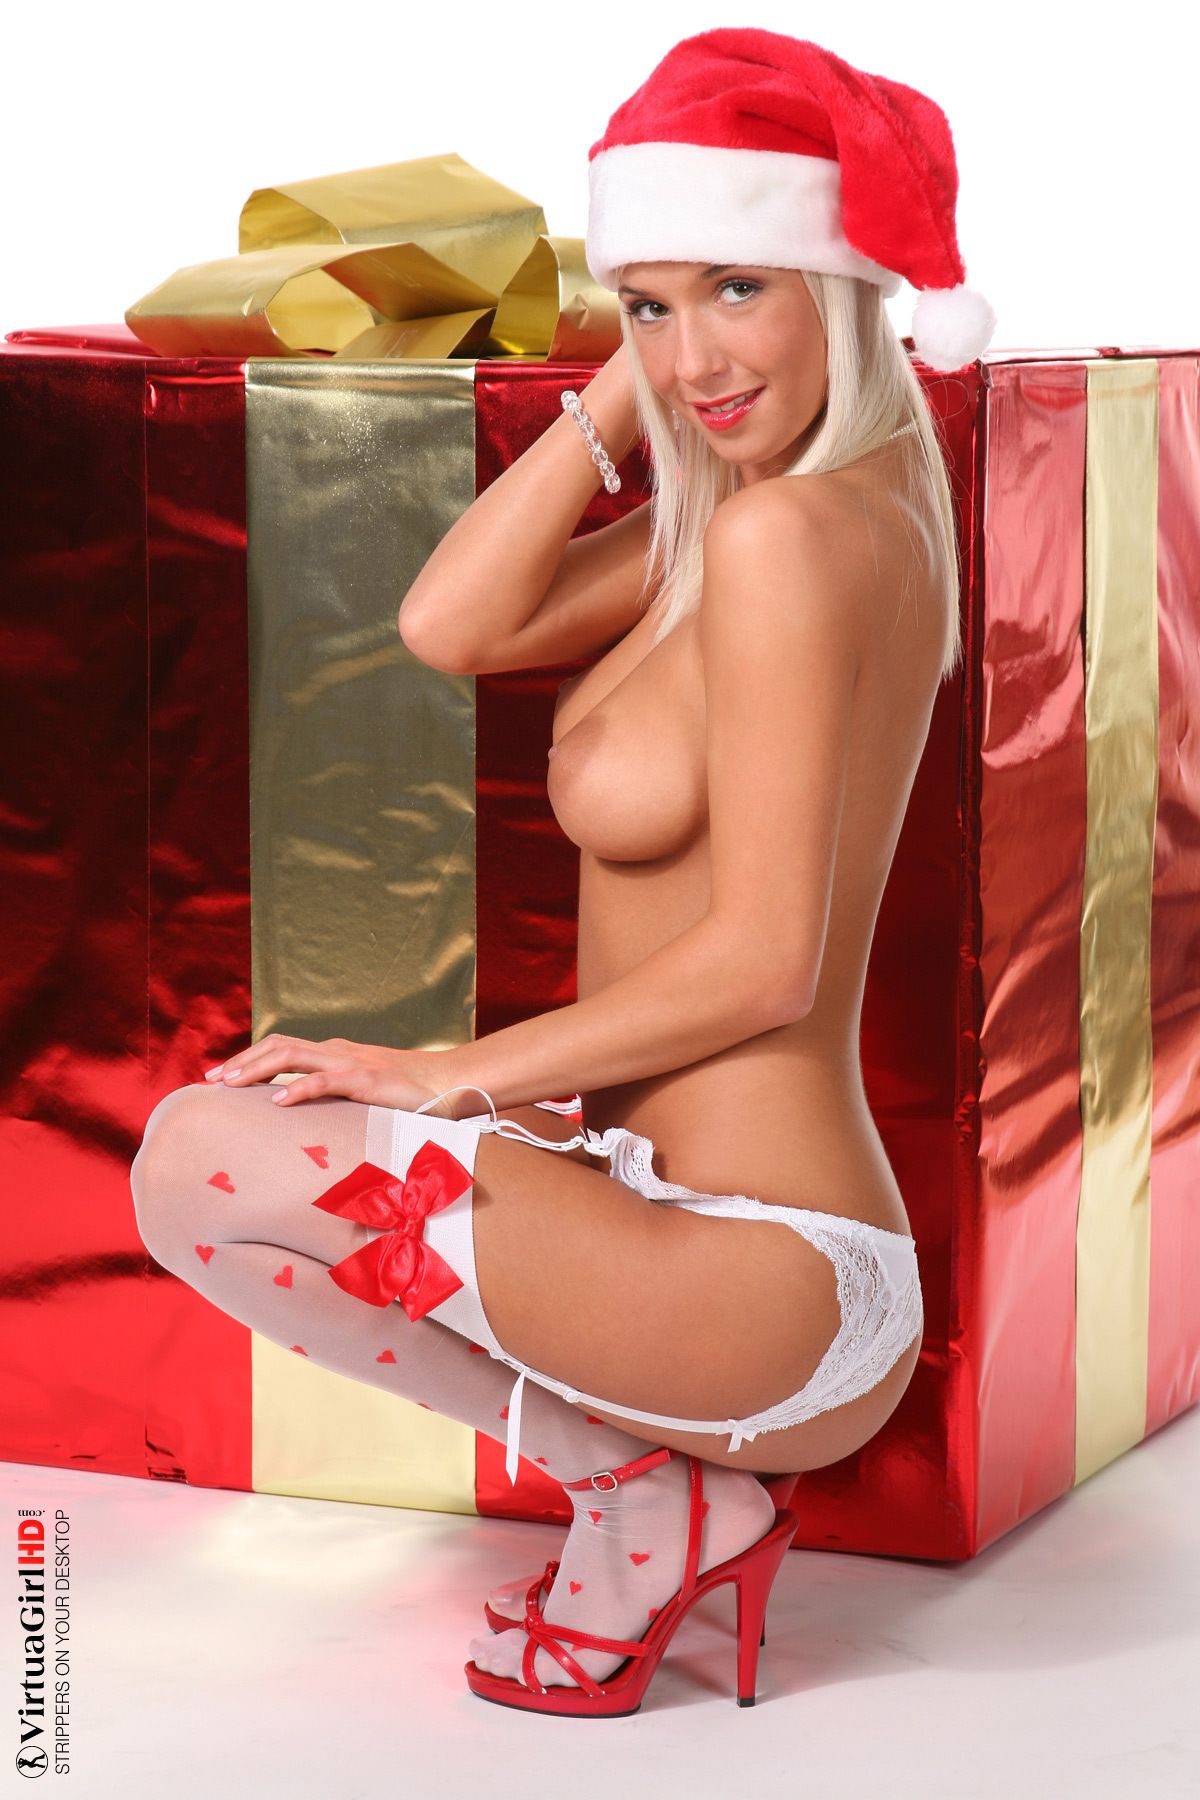 VirtuaGirl - Natali Blond - MERRY CHRISTMAS 01